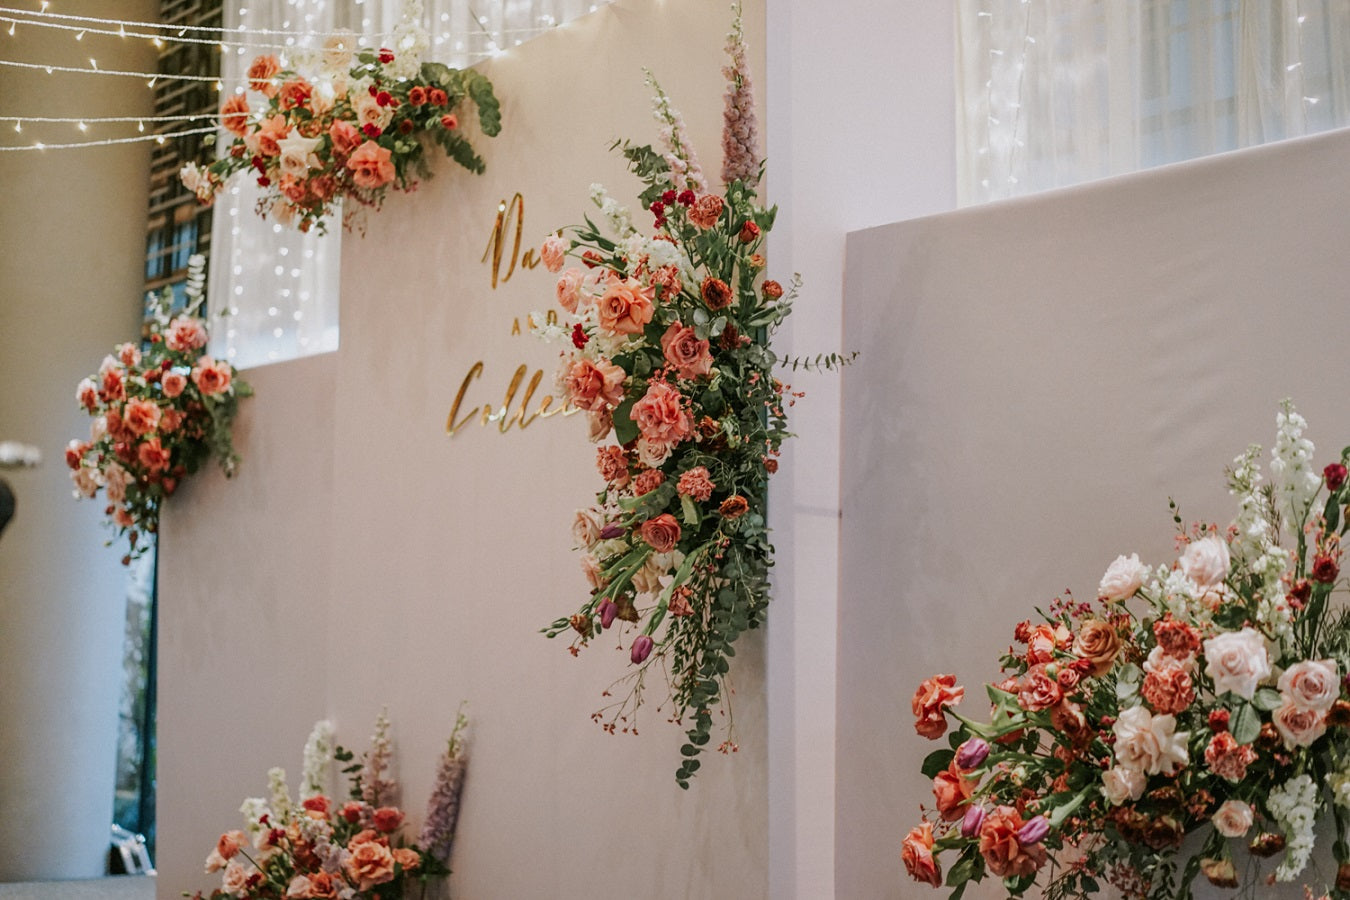 PARKROYAL COLLECTION on Pickering solemnisation and wedding ceremony with fairylights and custom frame wedding backdrop